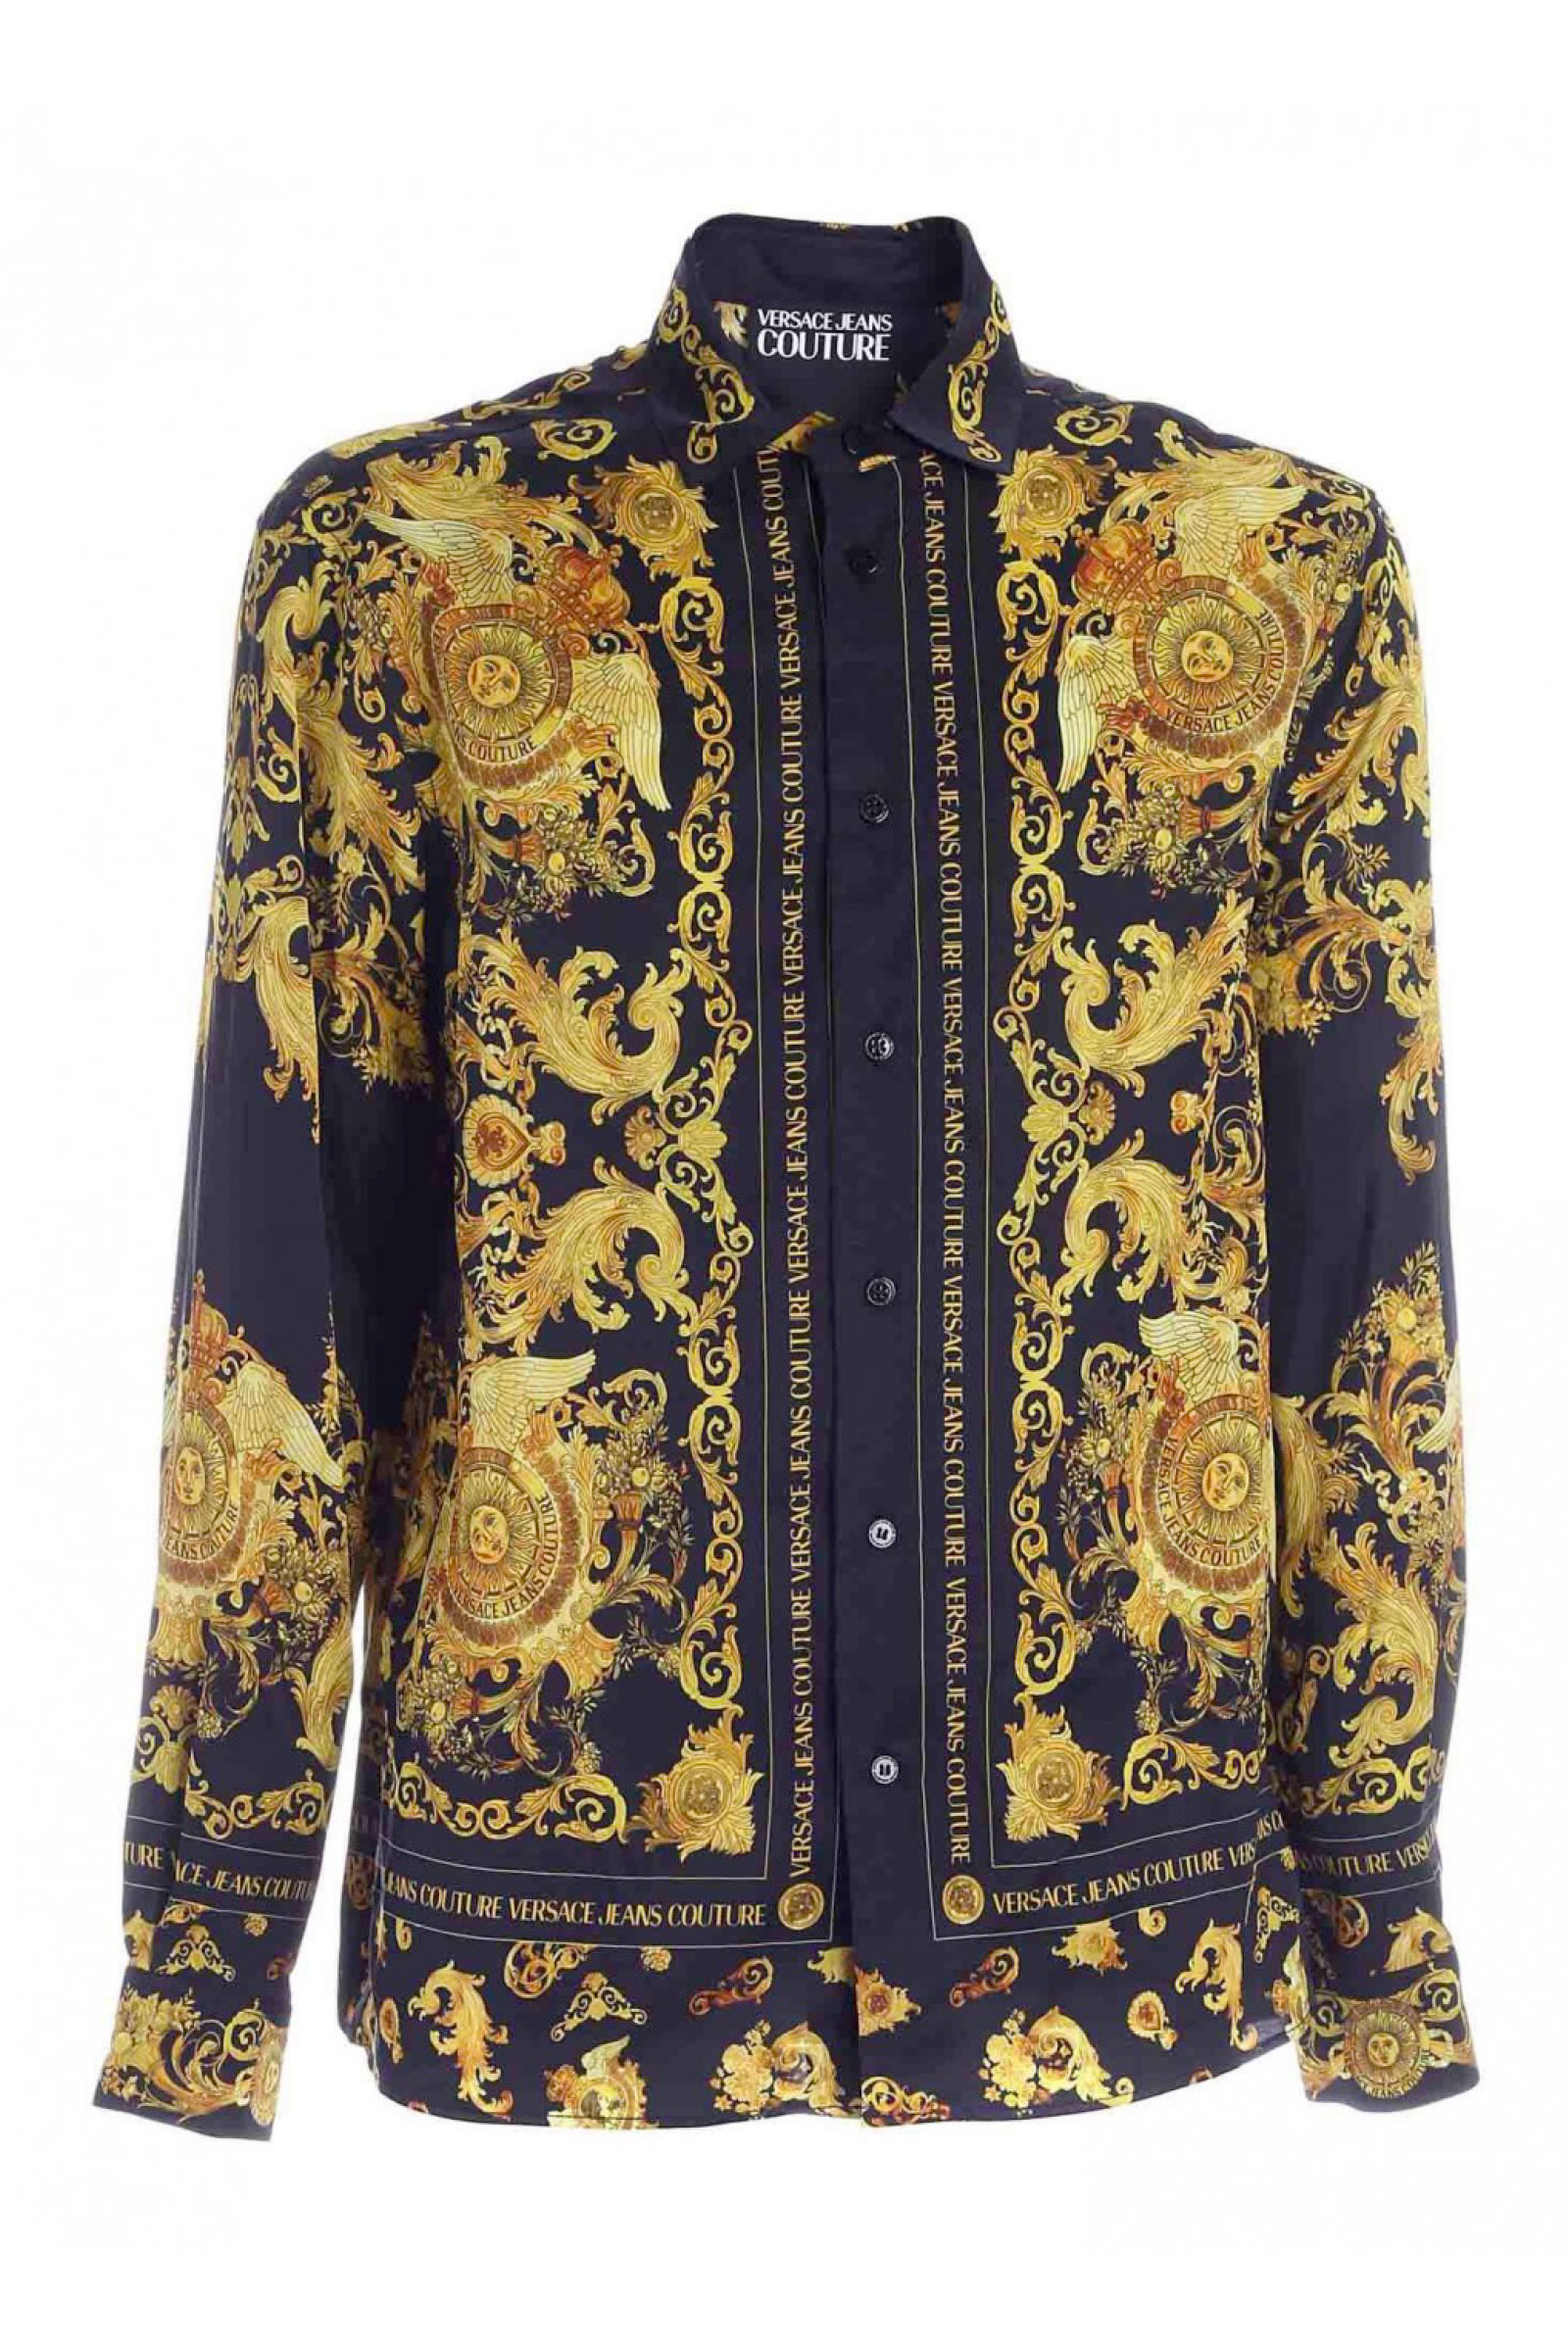 VERSACE JEANS COUTURE Men's shirt VERSACE JEANS COUTURE | Shirt | B1GWA6R3S0273899